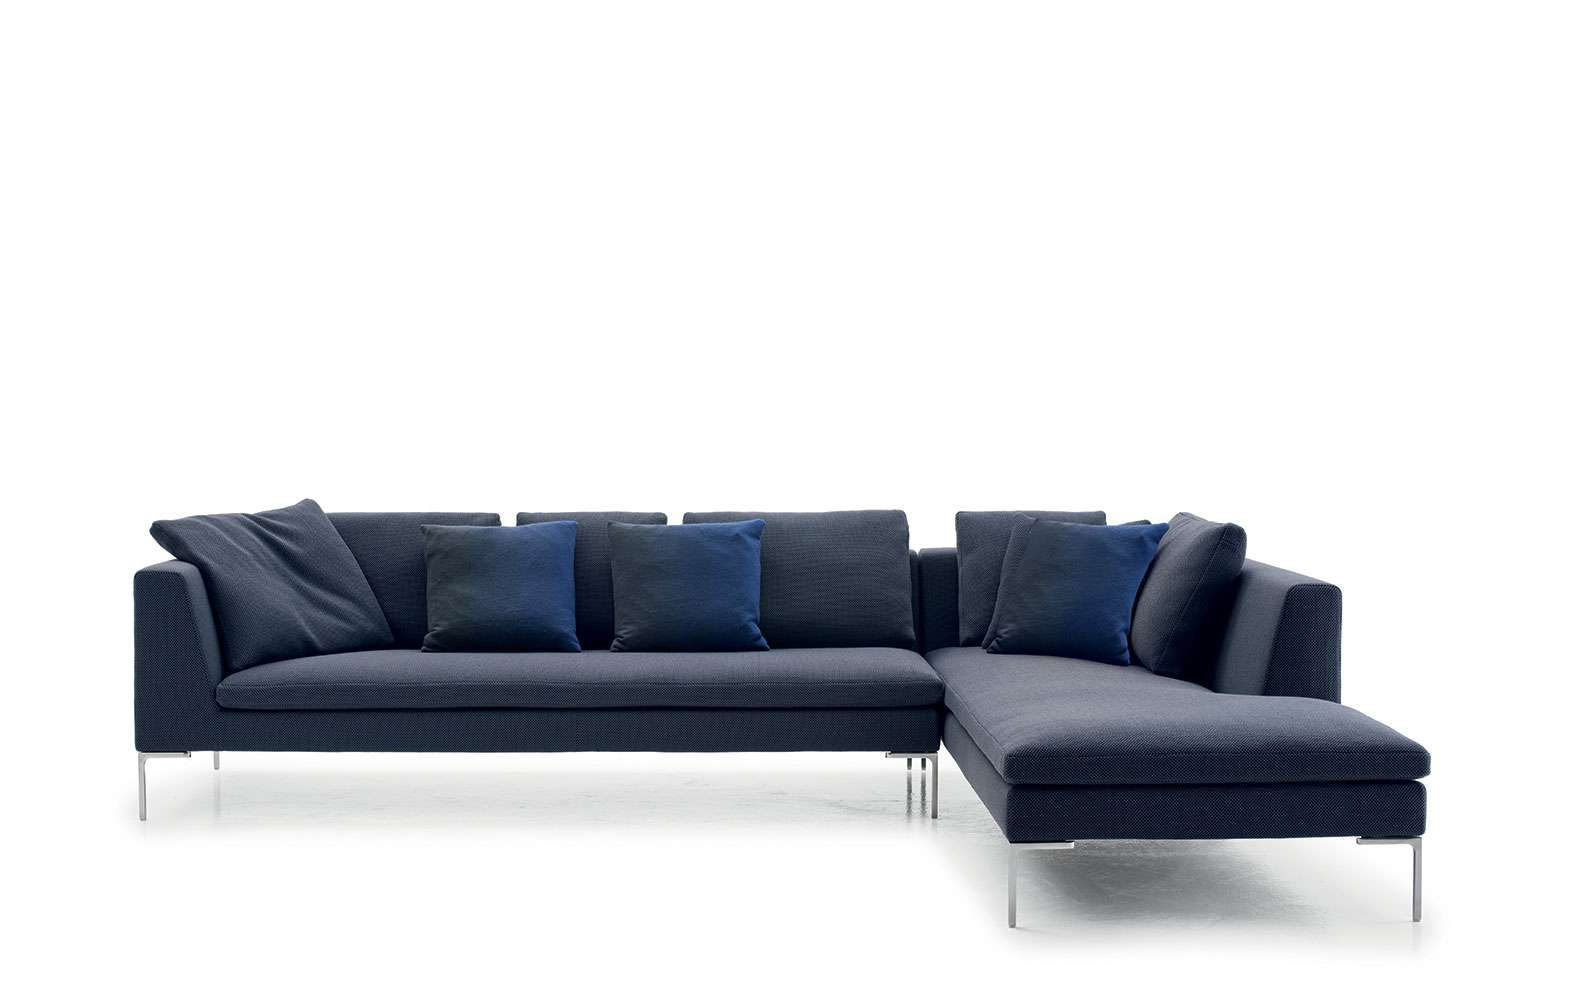 Fine Bb Italia Charles Sectional Sofa Replica 2 3 Seater Available Short Links Chair Design For Home Short Linksinfo